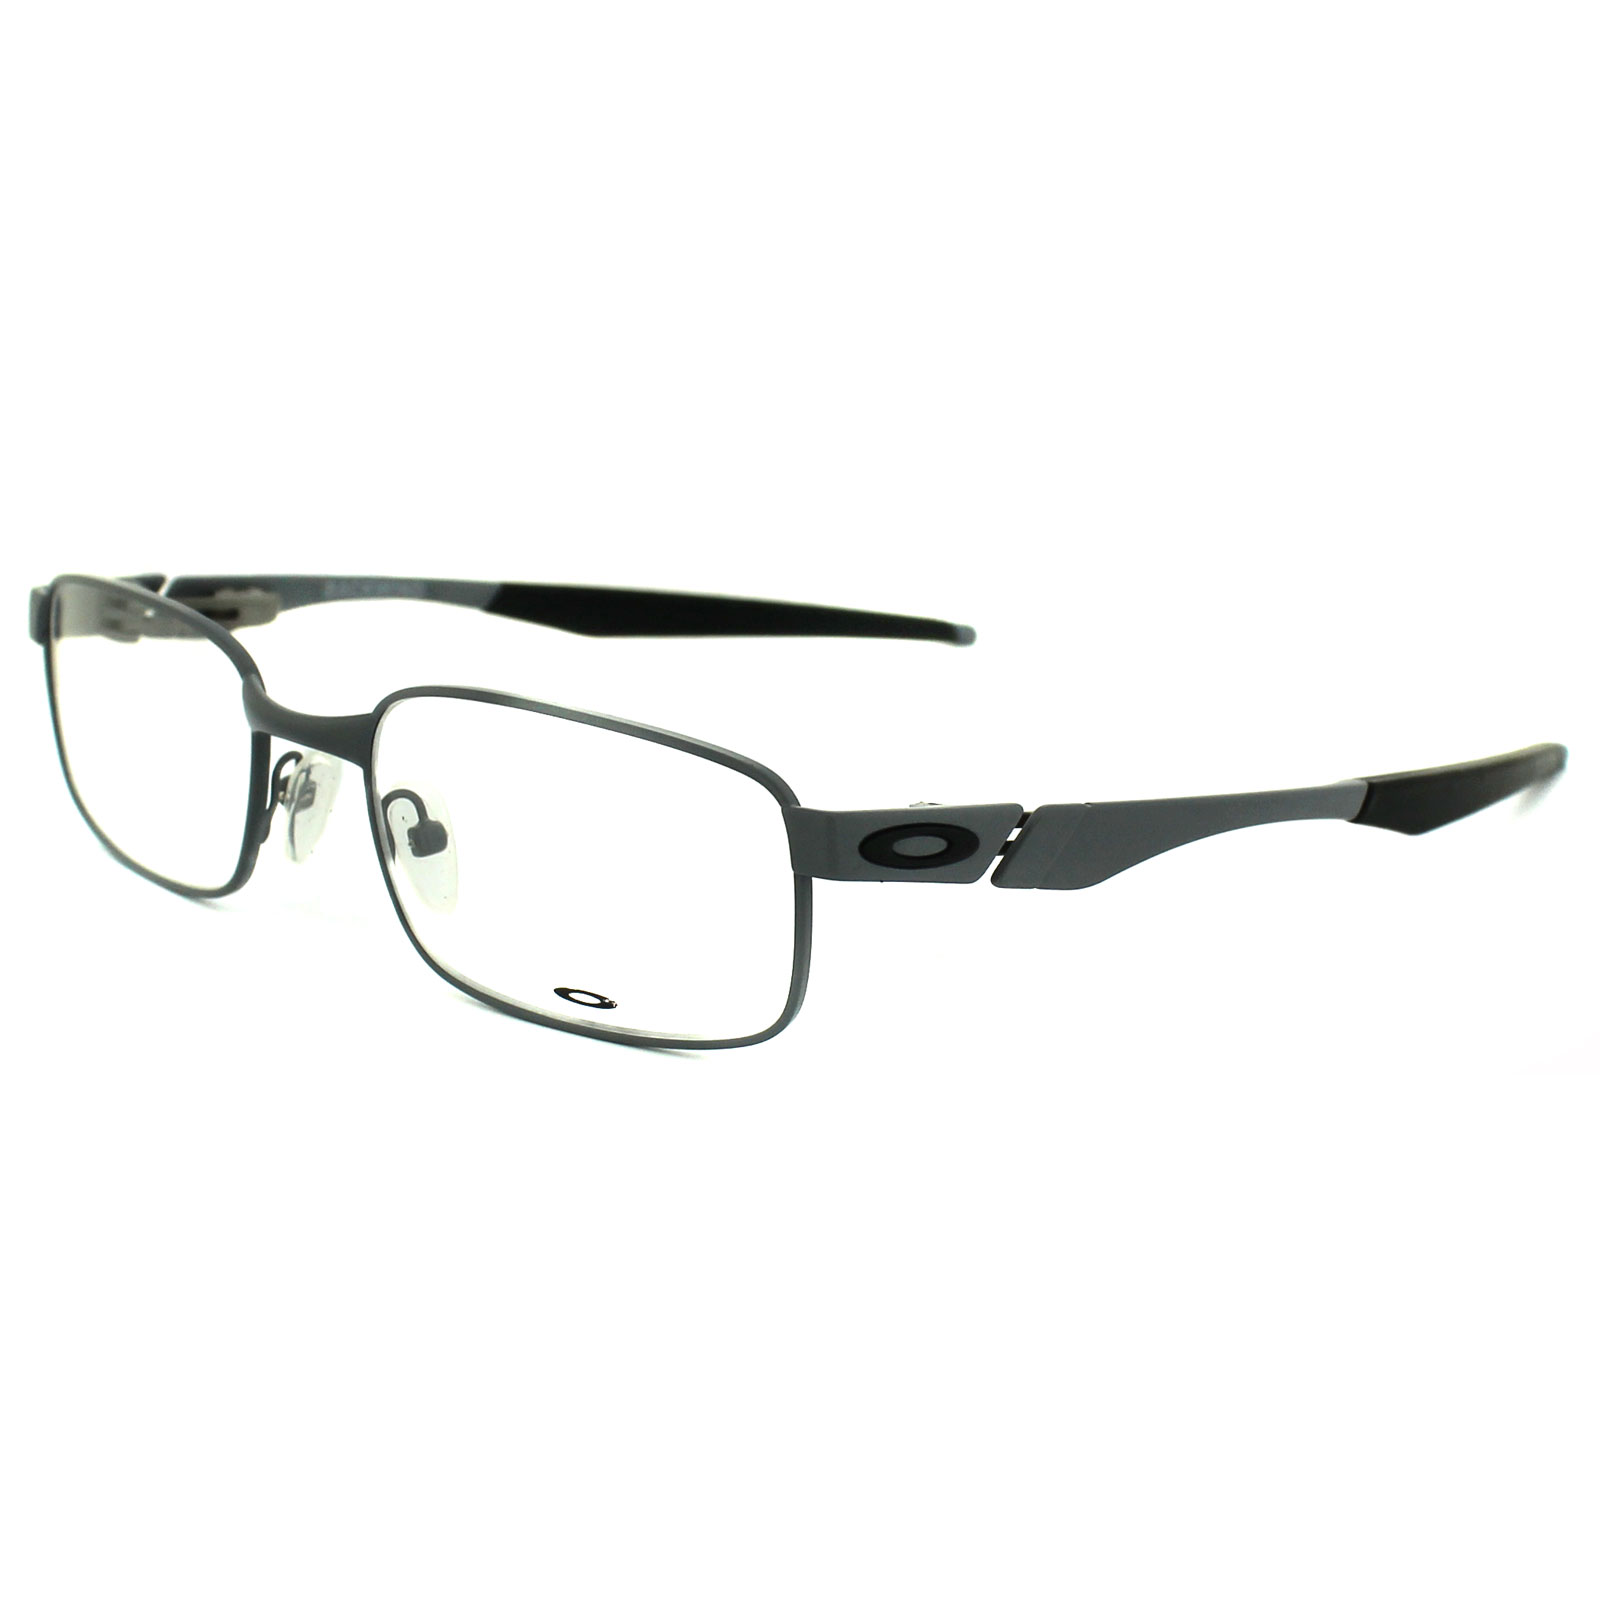 Eyeglass Frame Oakley : Cheap Oakley Backwind Glasses Frames - Discounted Sunglasses